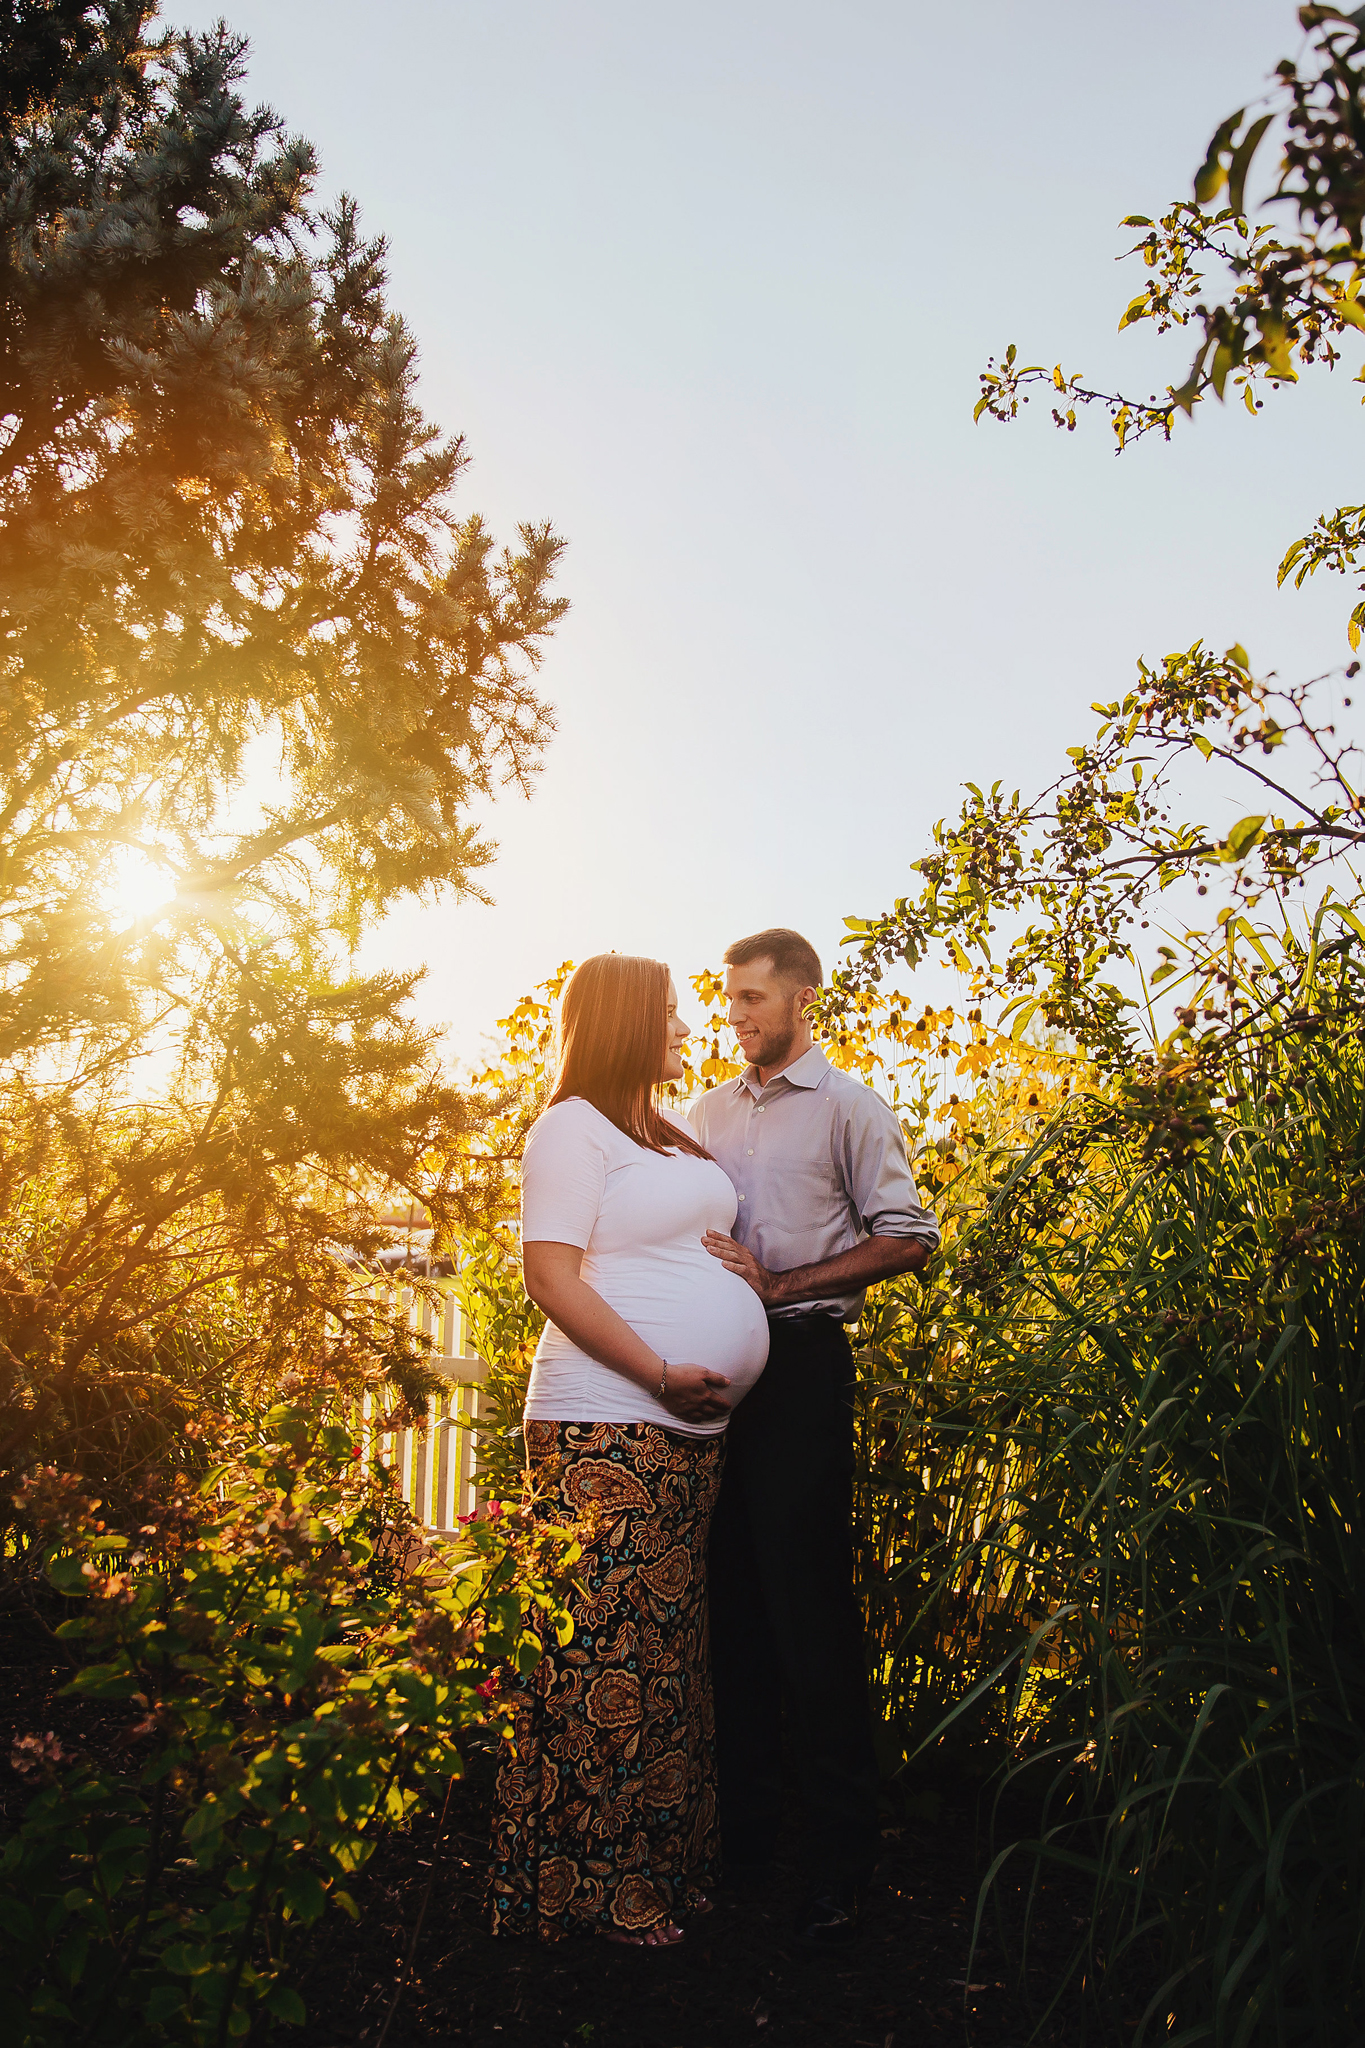 Endlessly Photography   Maternity Session   Kallas Family